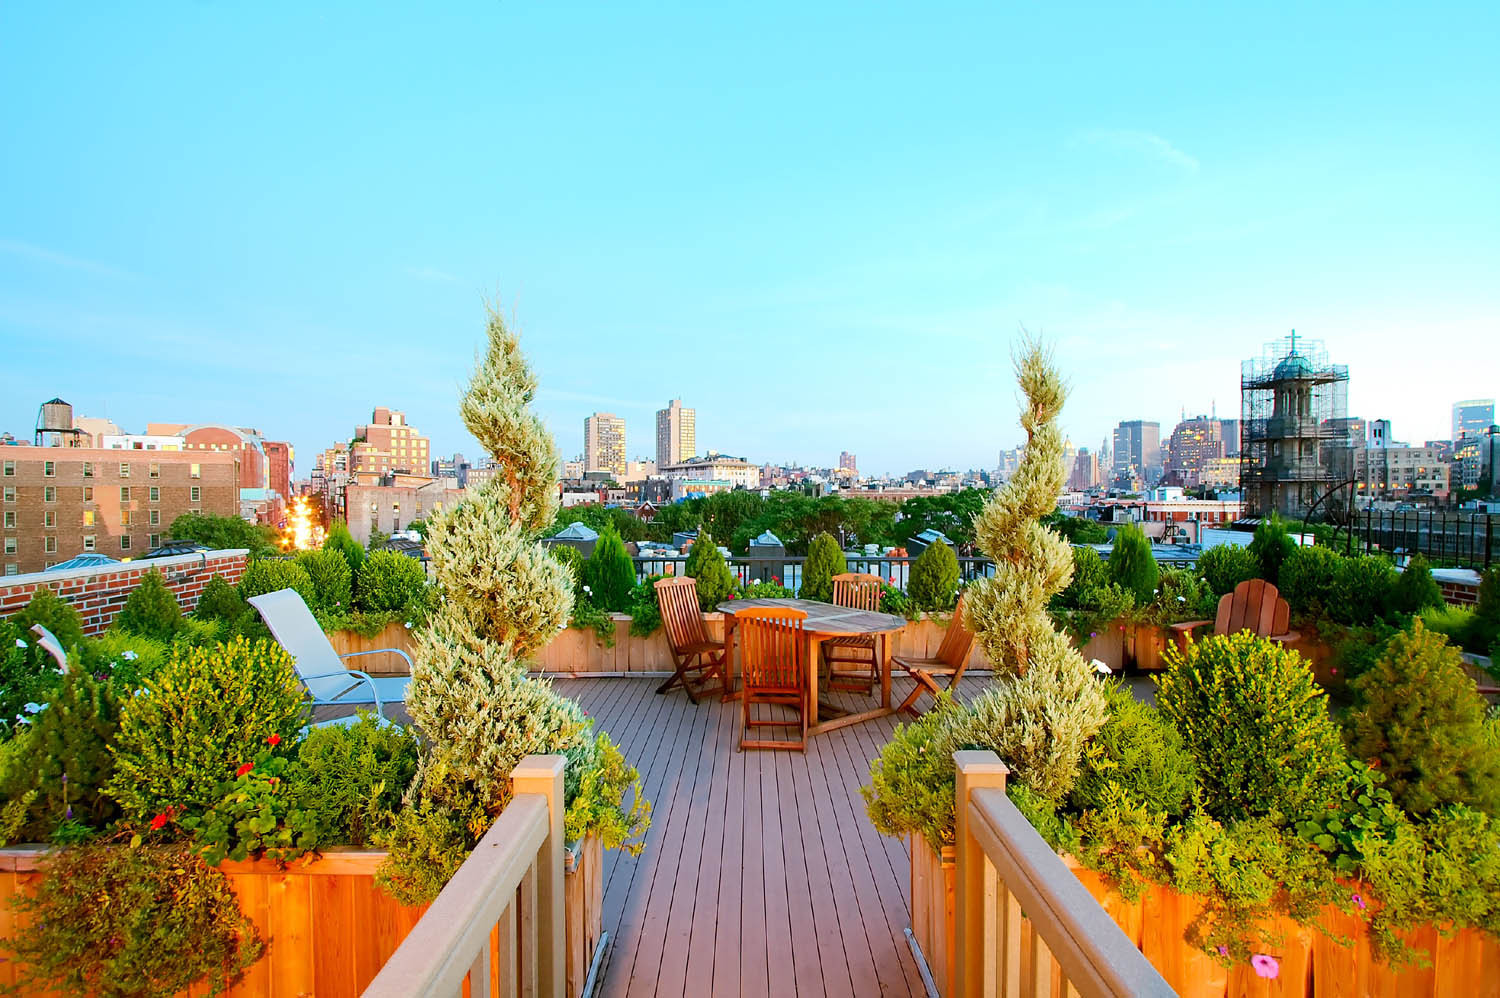 Rooftop Terrace Landscape  NYC Landscape Design How To Rooftop Terrace Garden All